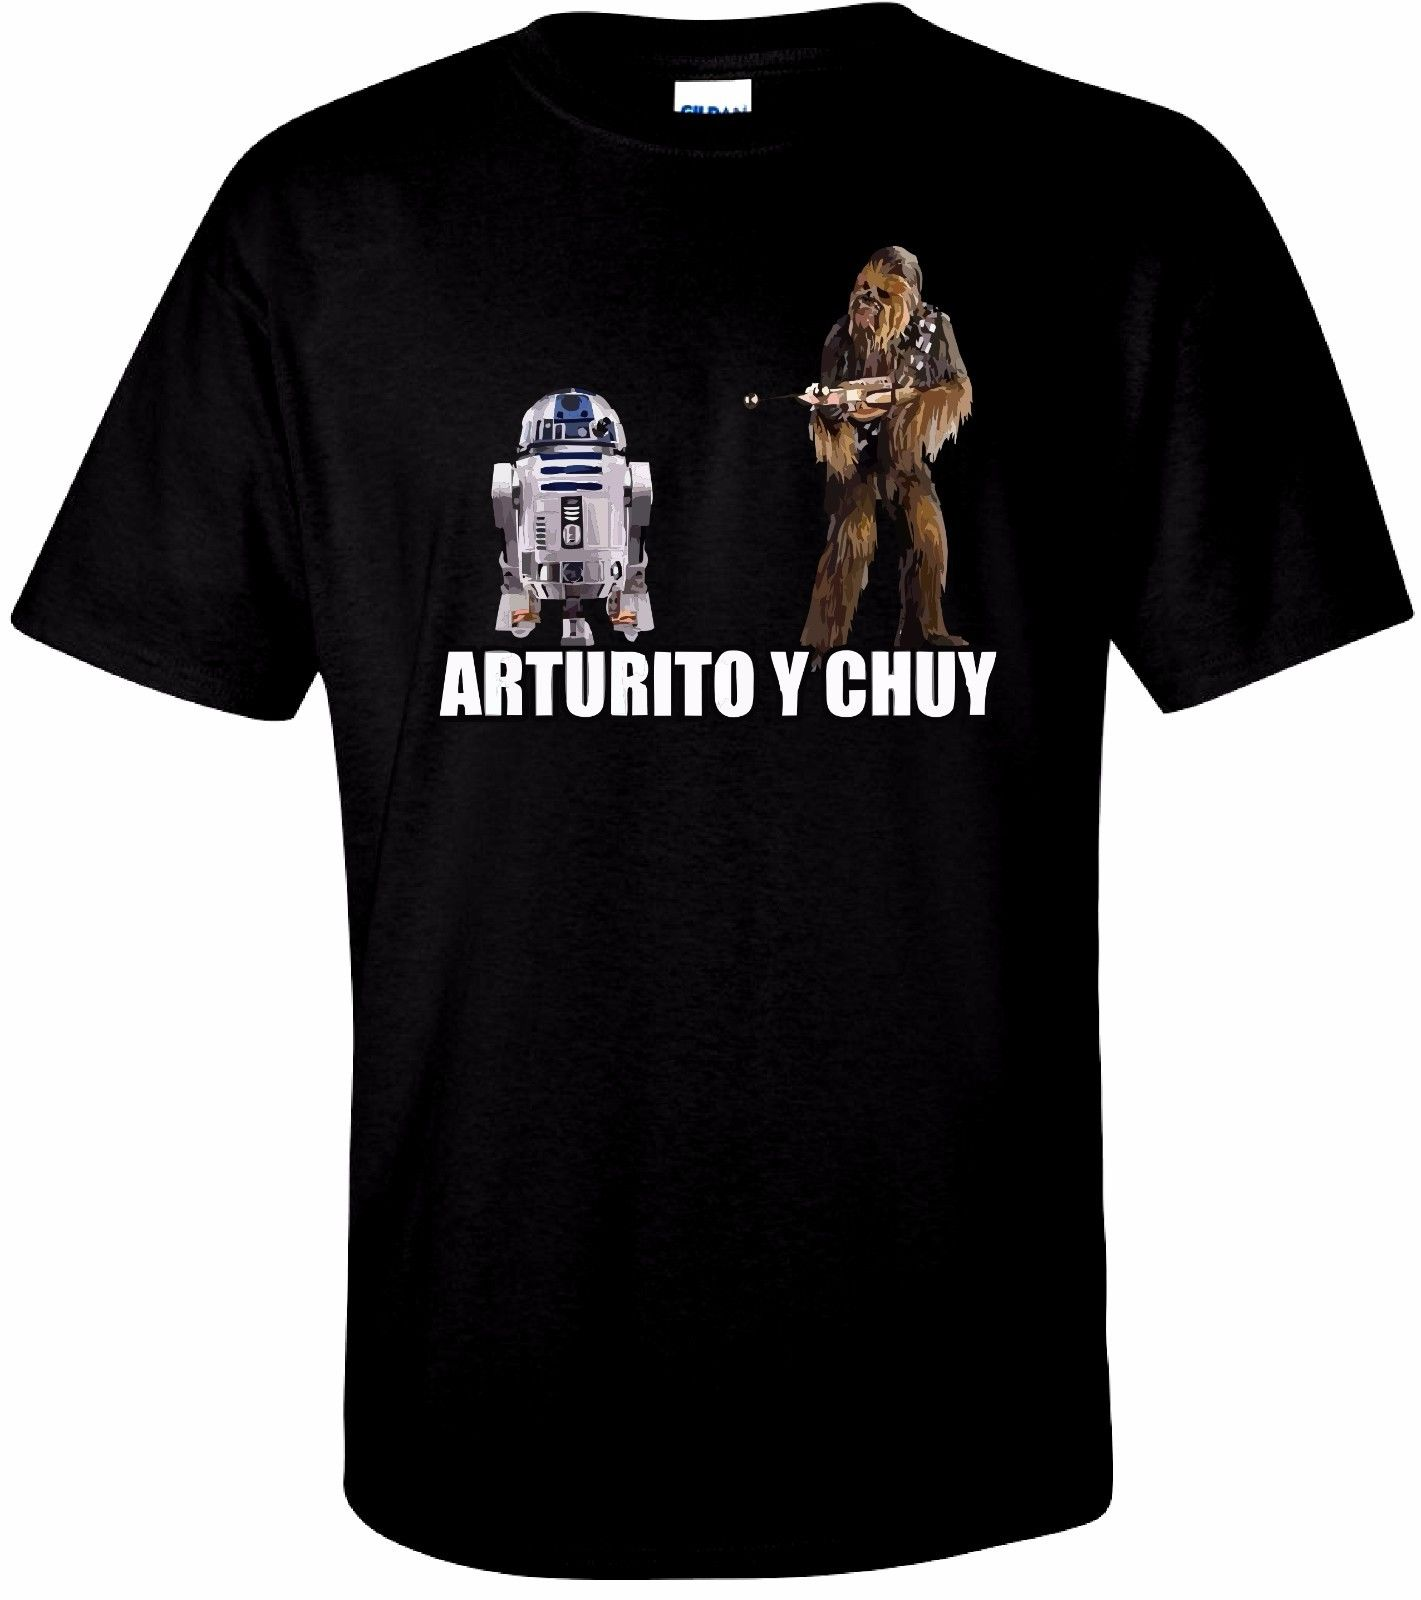 Arturito y Chuy T Shirt 100% Cotton Tee by BMF Apparel Male Best Selling T Shirt Summer Short Sleeves Cotton Fashion t Shirt